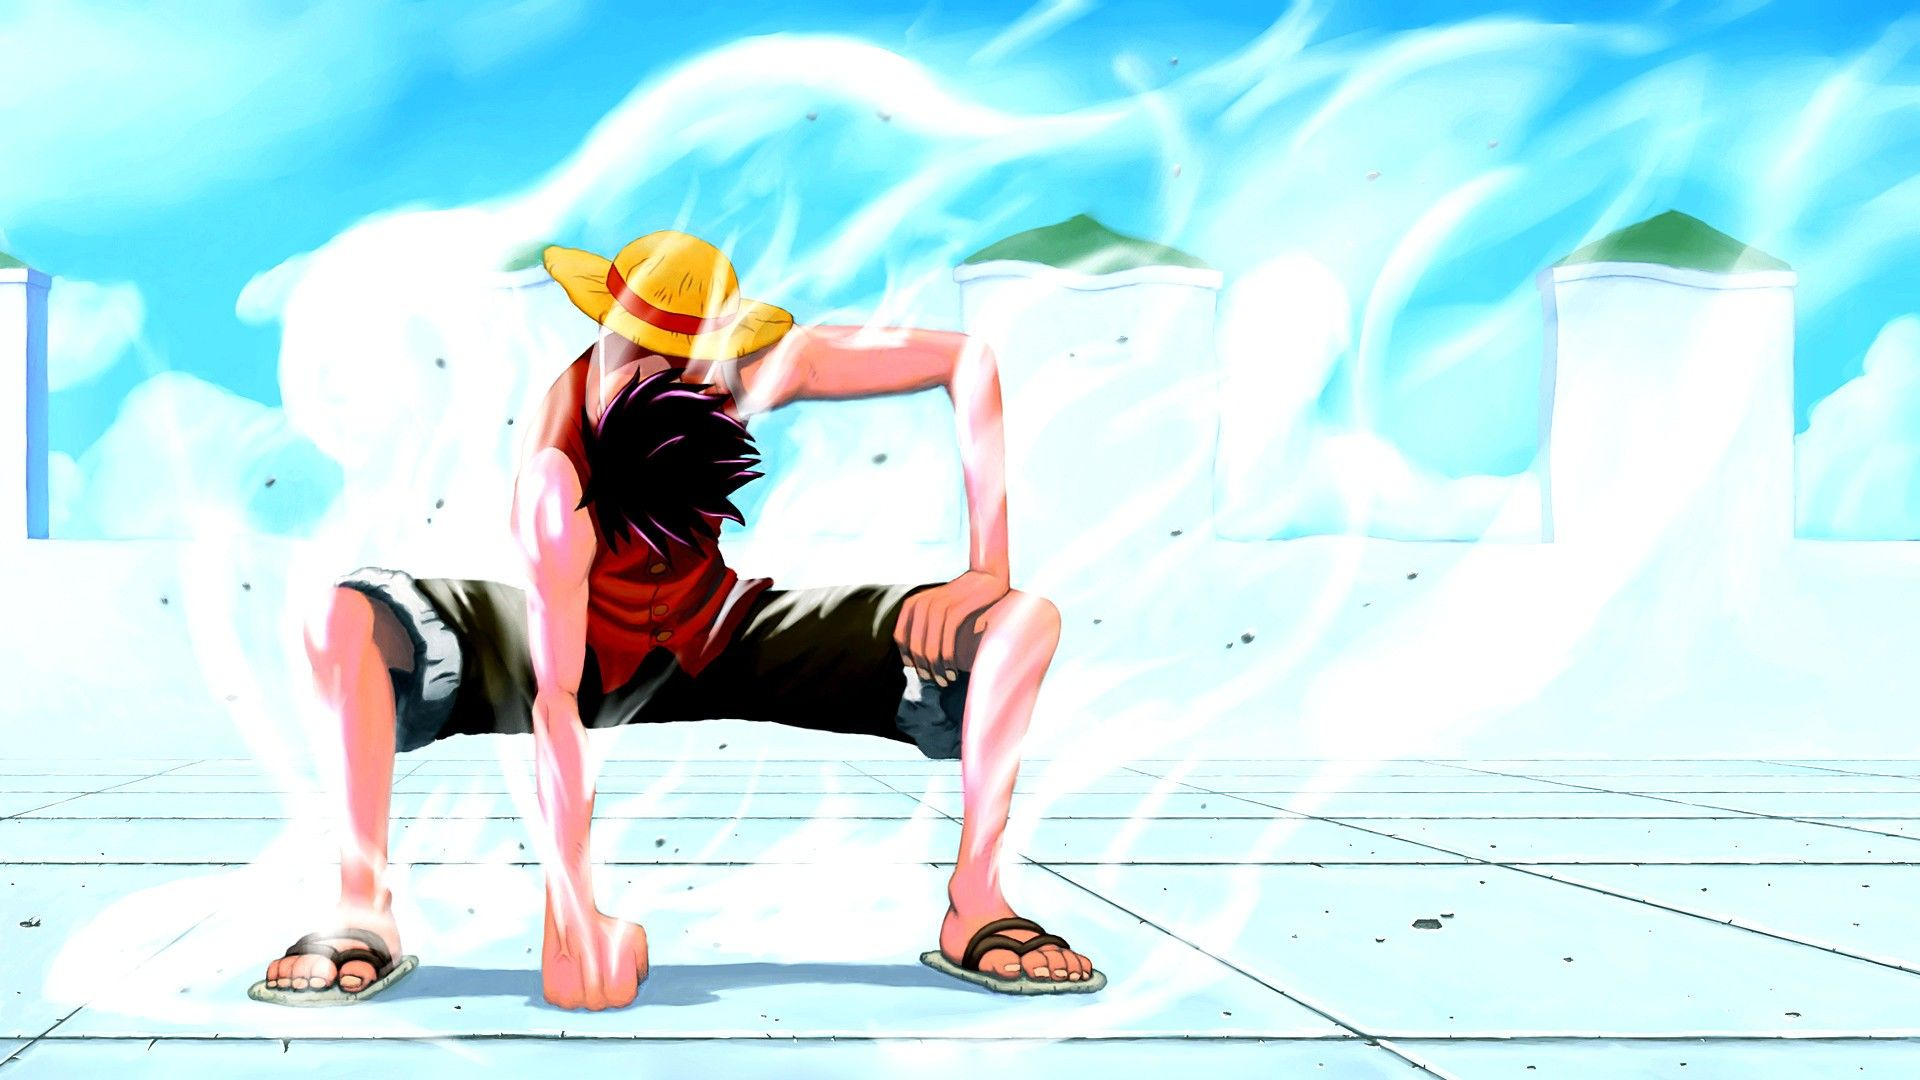 ace one piece hd 37 30202 hd images wallpapers wallpaper one piece